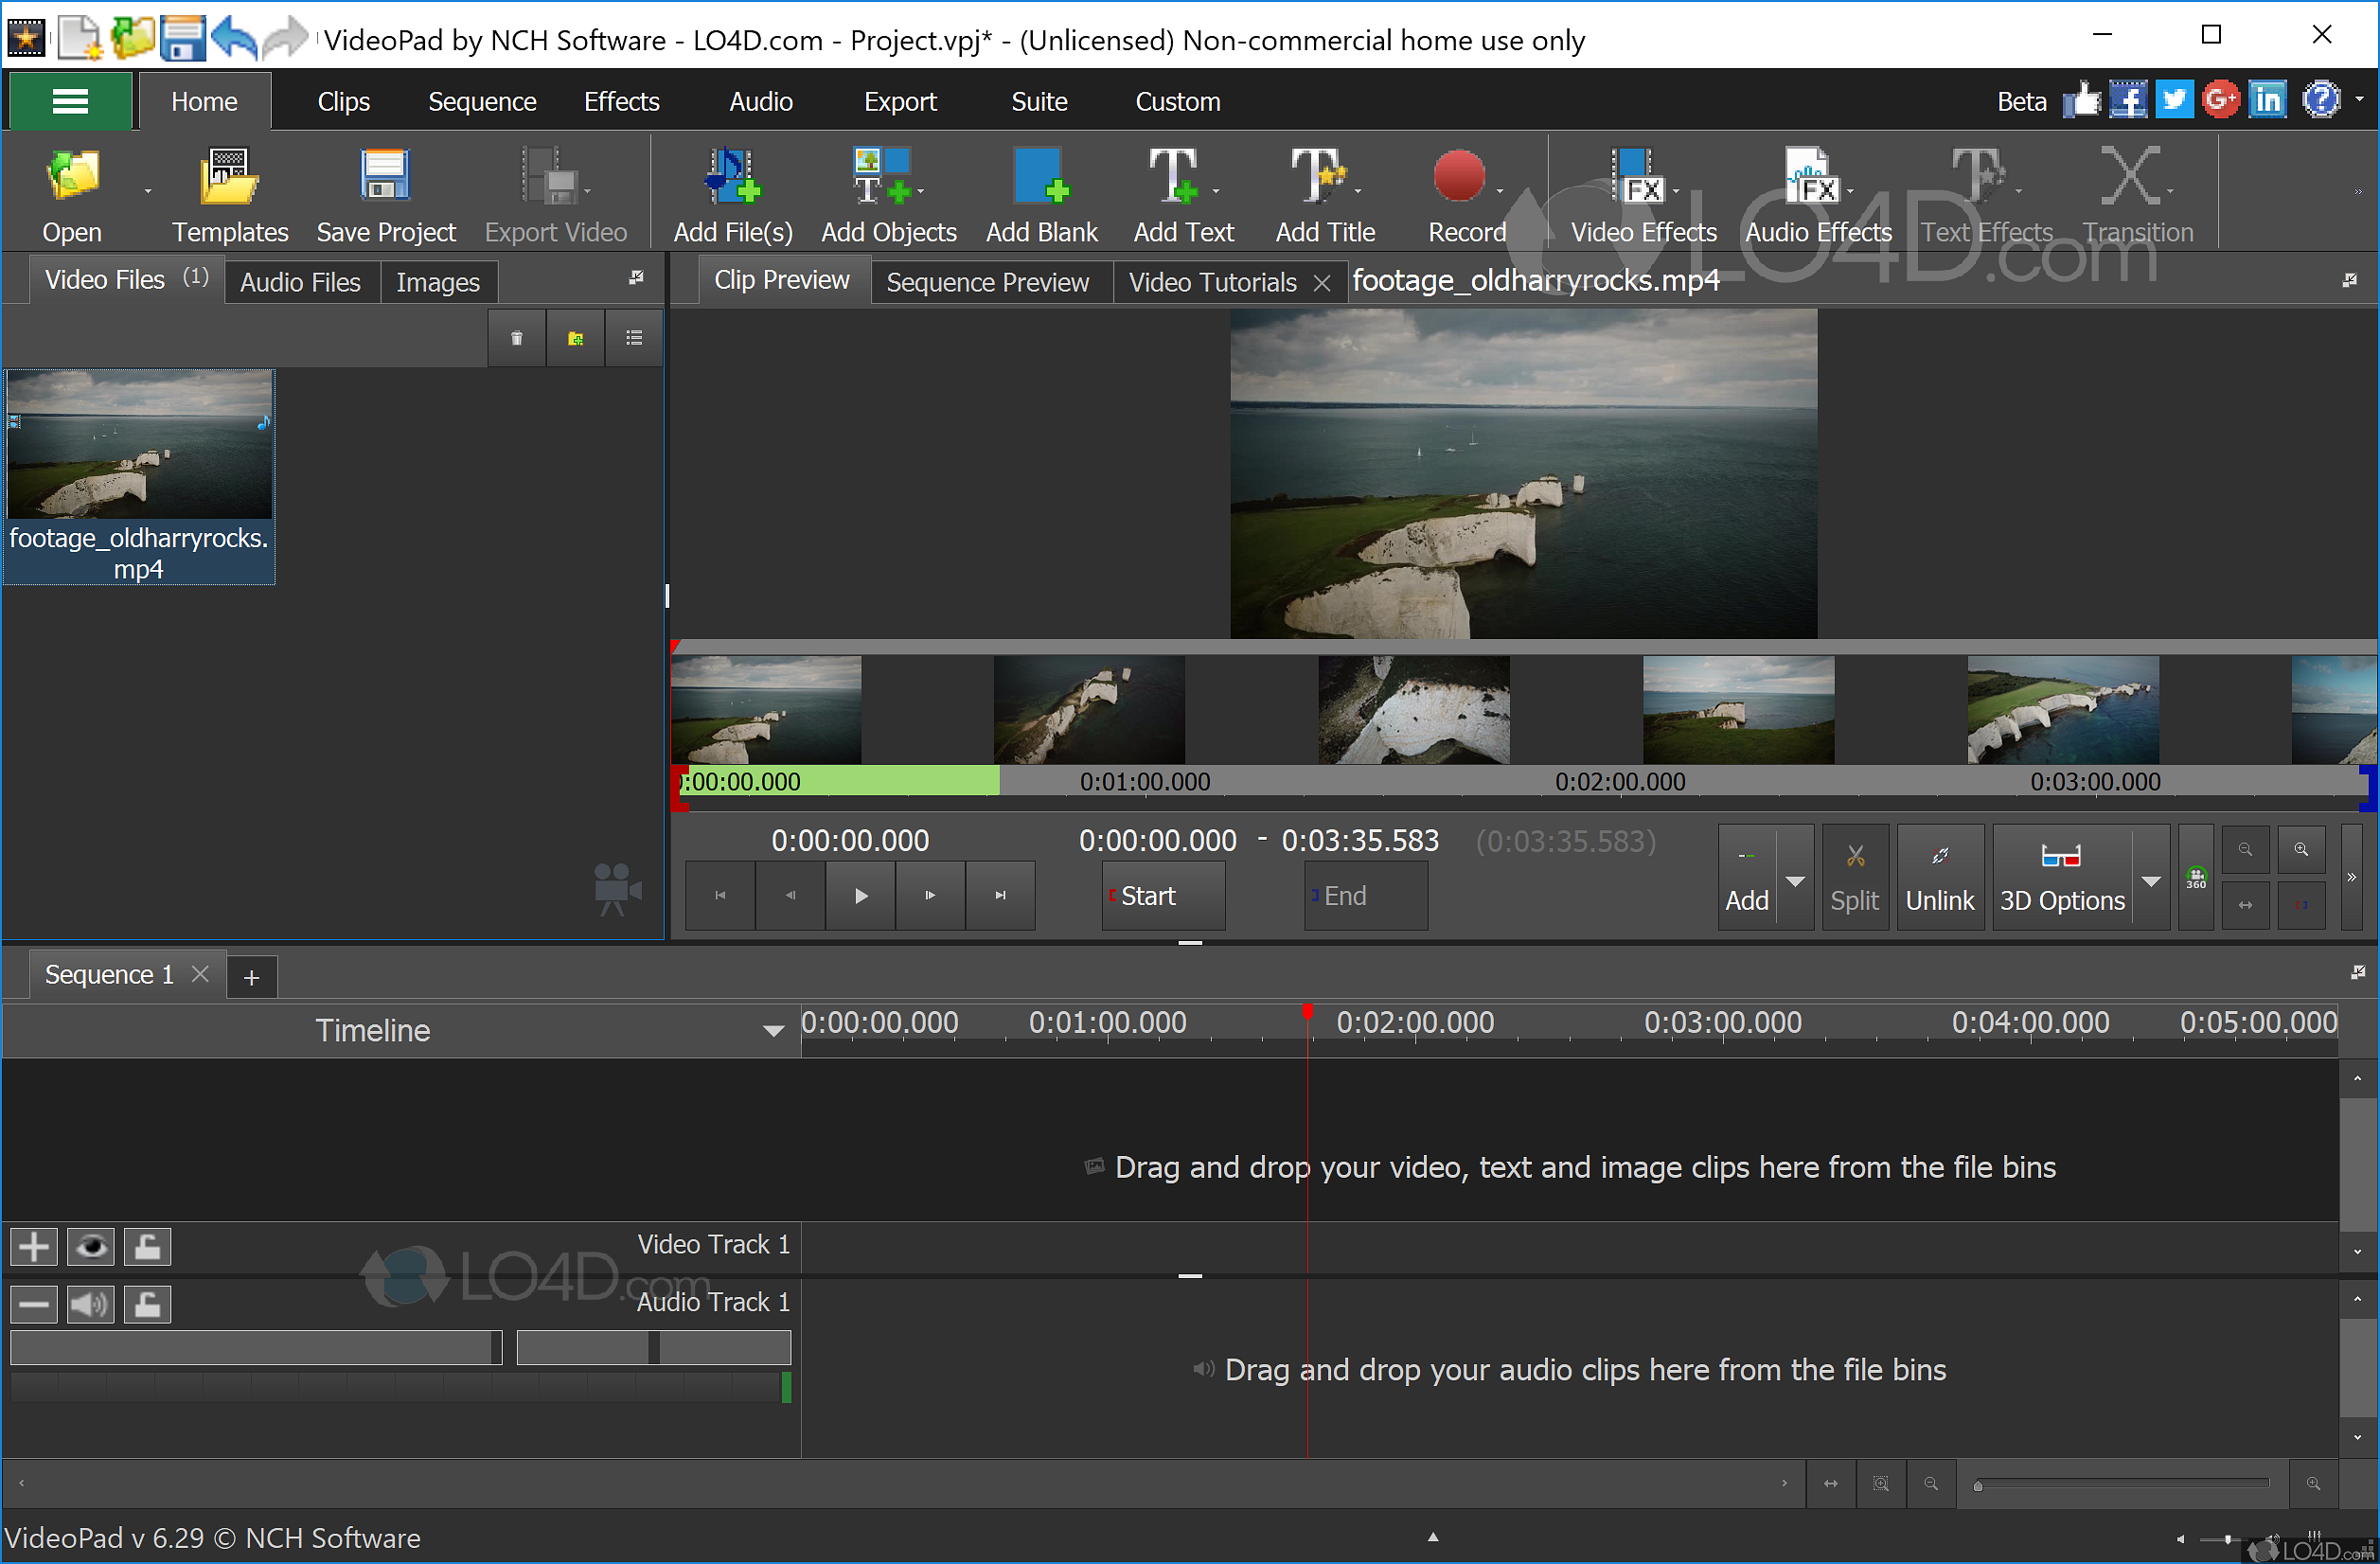 VideoPad Video Editor Free - Download